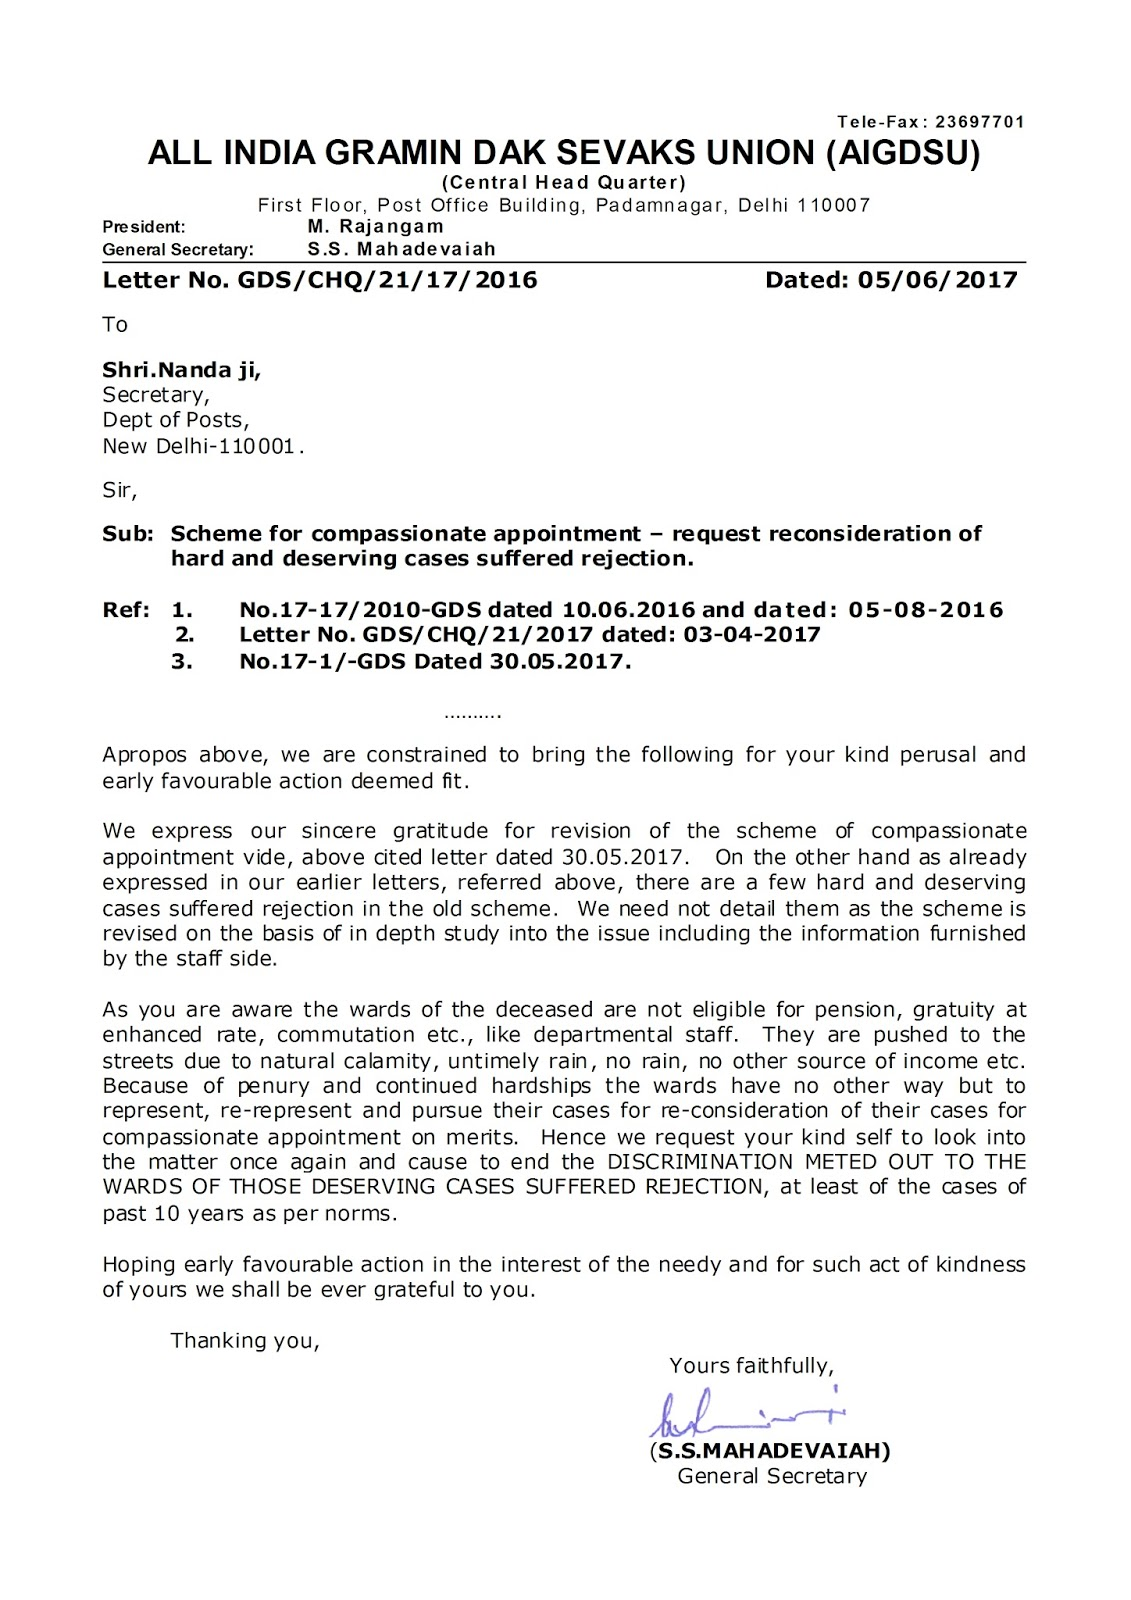 letter names that end in n 2017 letter format boy chq letter reg scheme for compassionate appointment 4